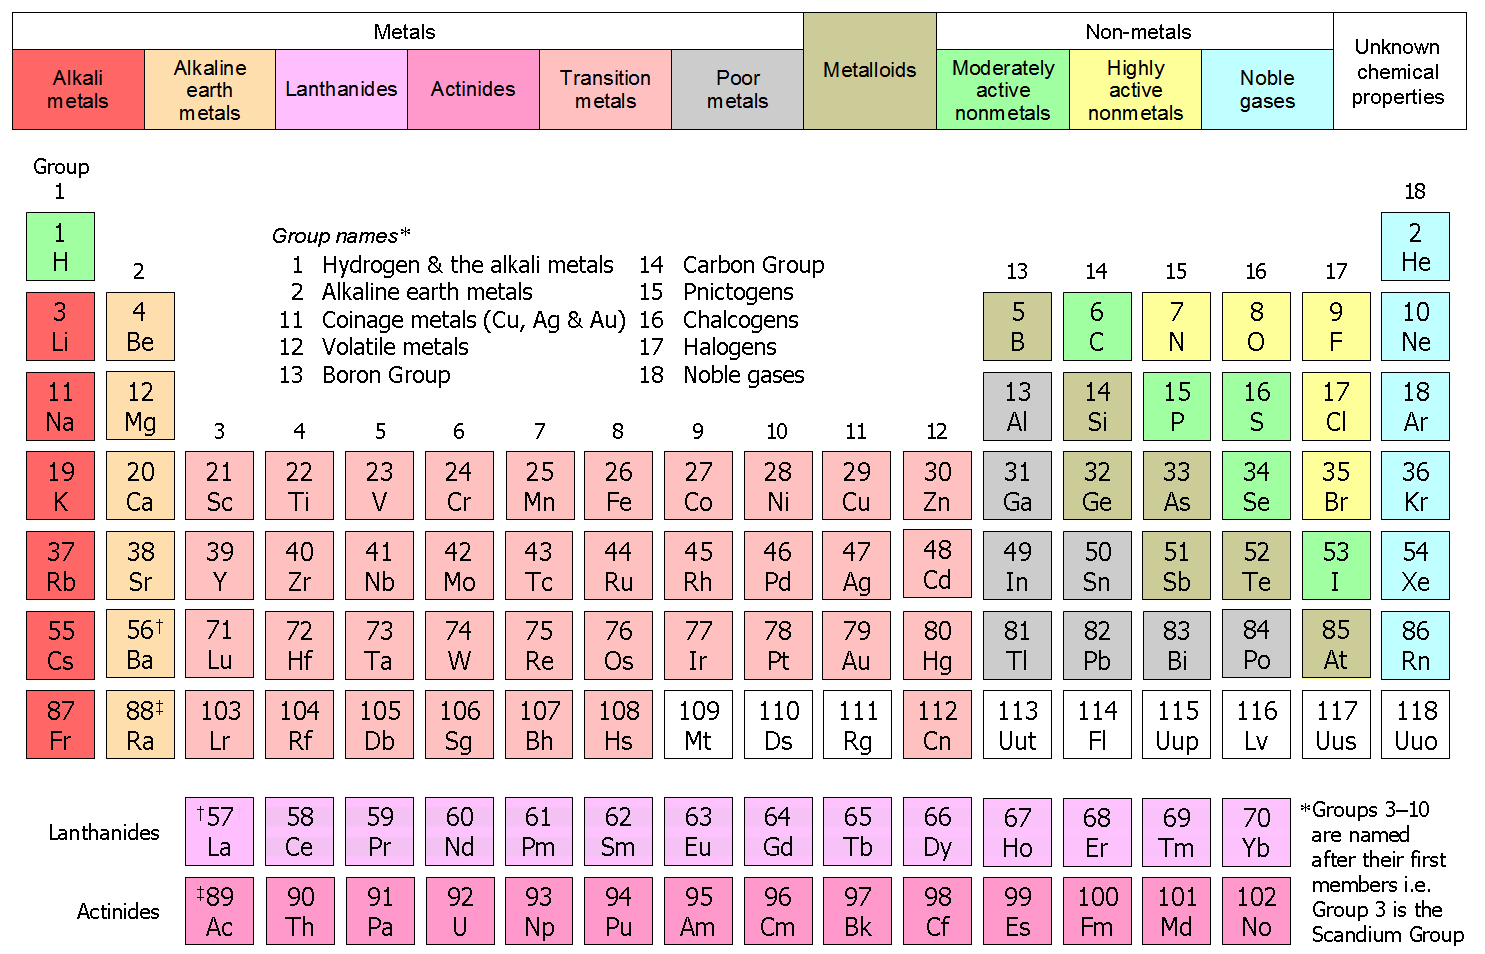 Structure of the modern periodic table chem in 10 online image httpsuploadmediawikipediacommons338r20g0 gamestrikefo Gallery